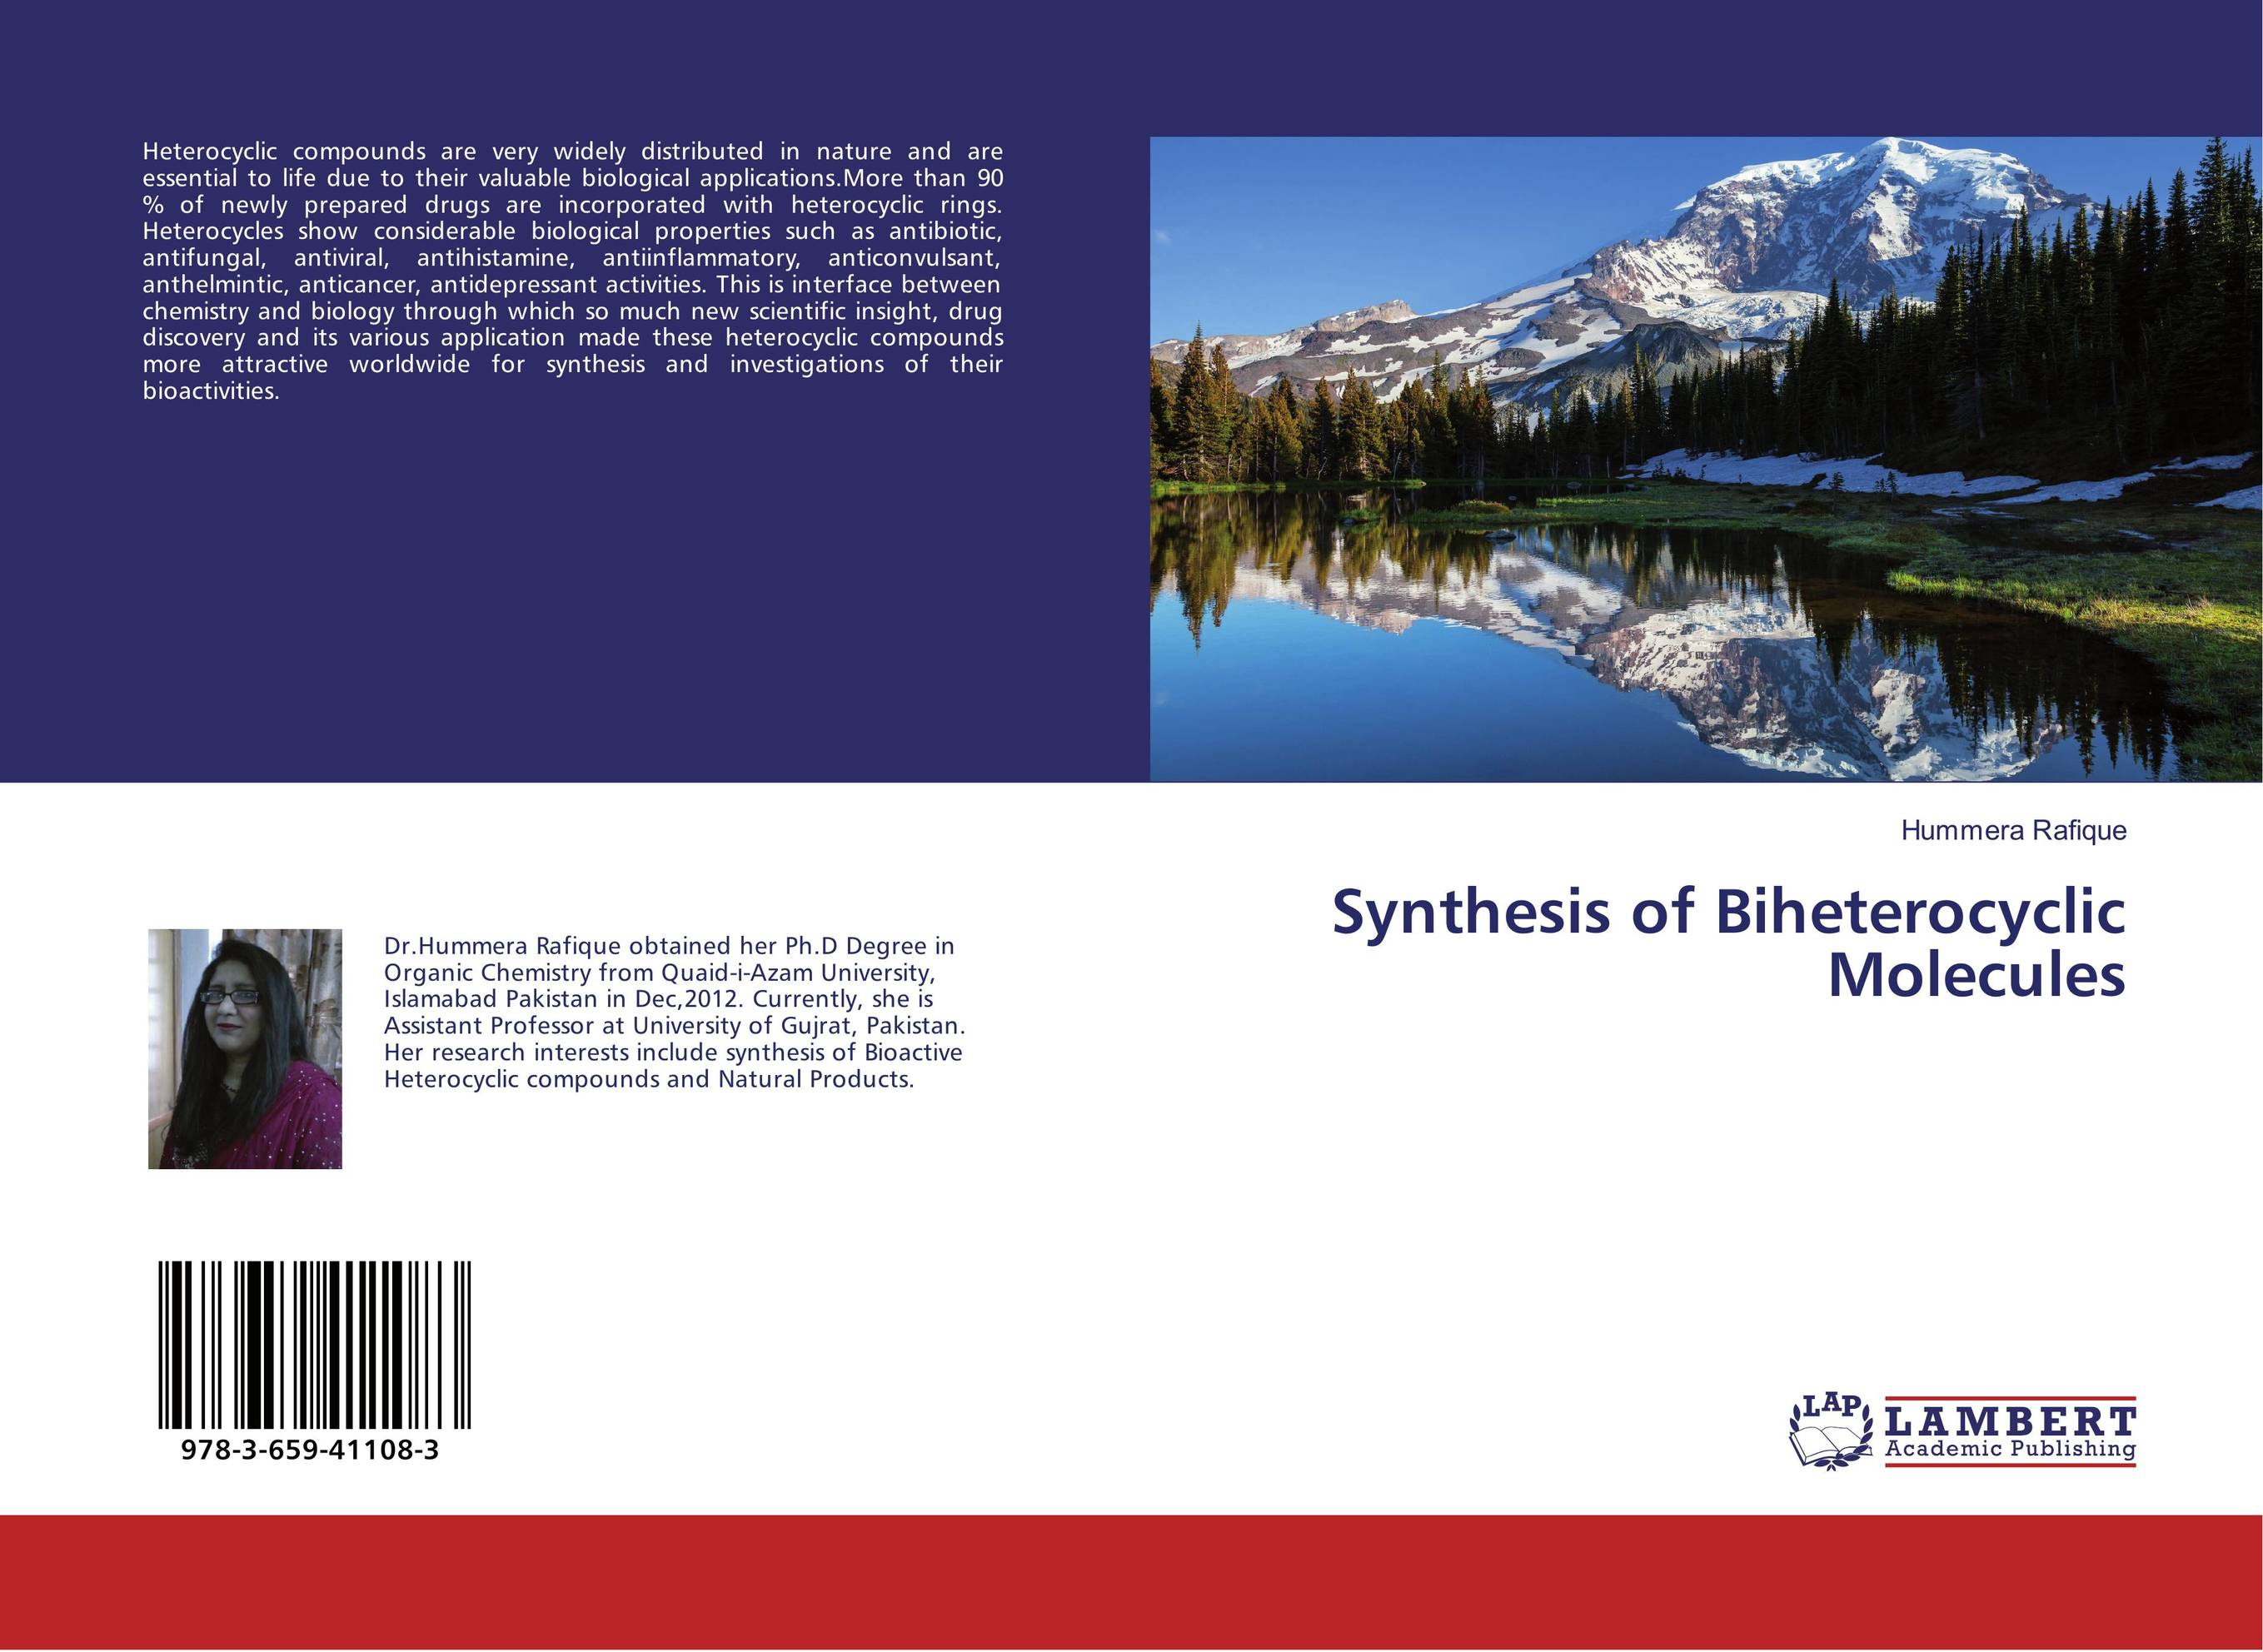 Synthesis of Biheterocyclic Molecules medicinal chemistry of heterocyclic natural compounds